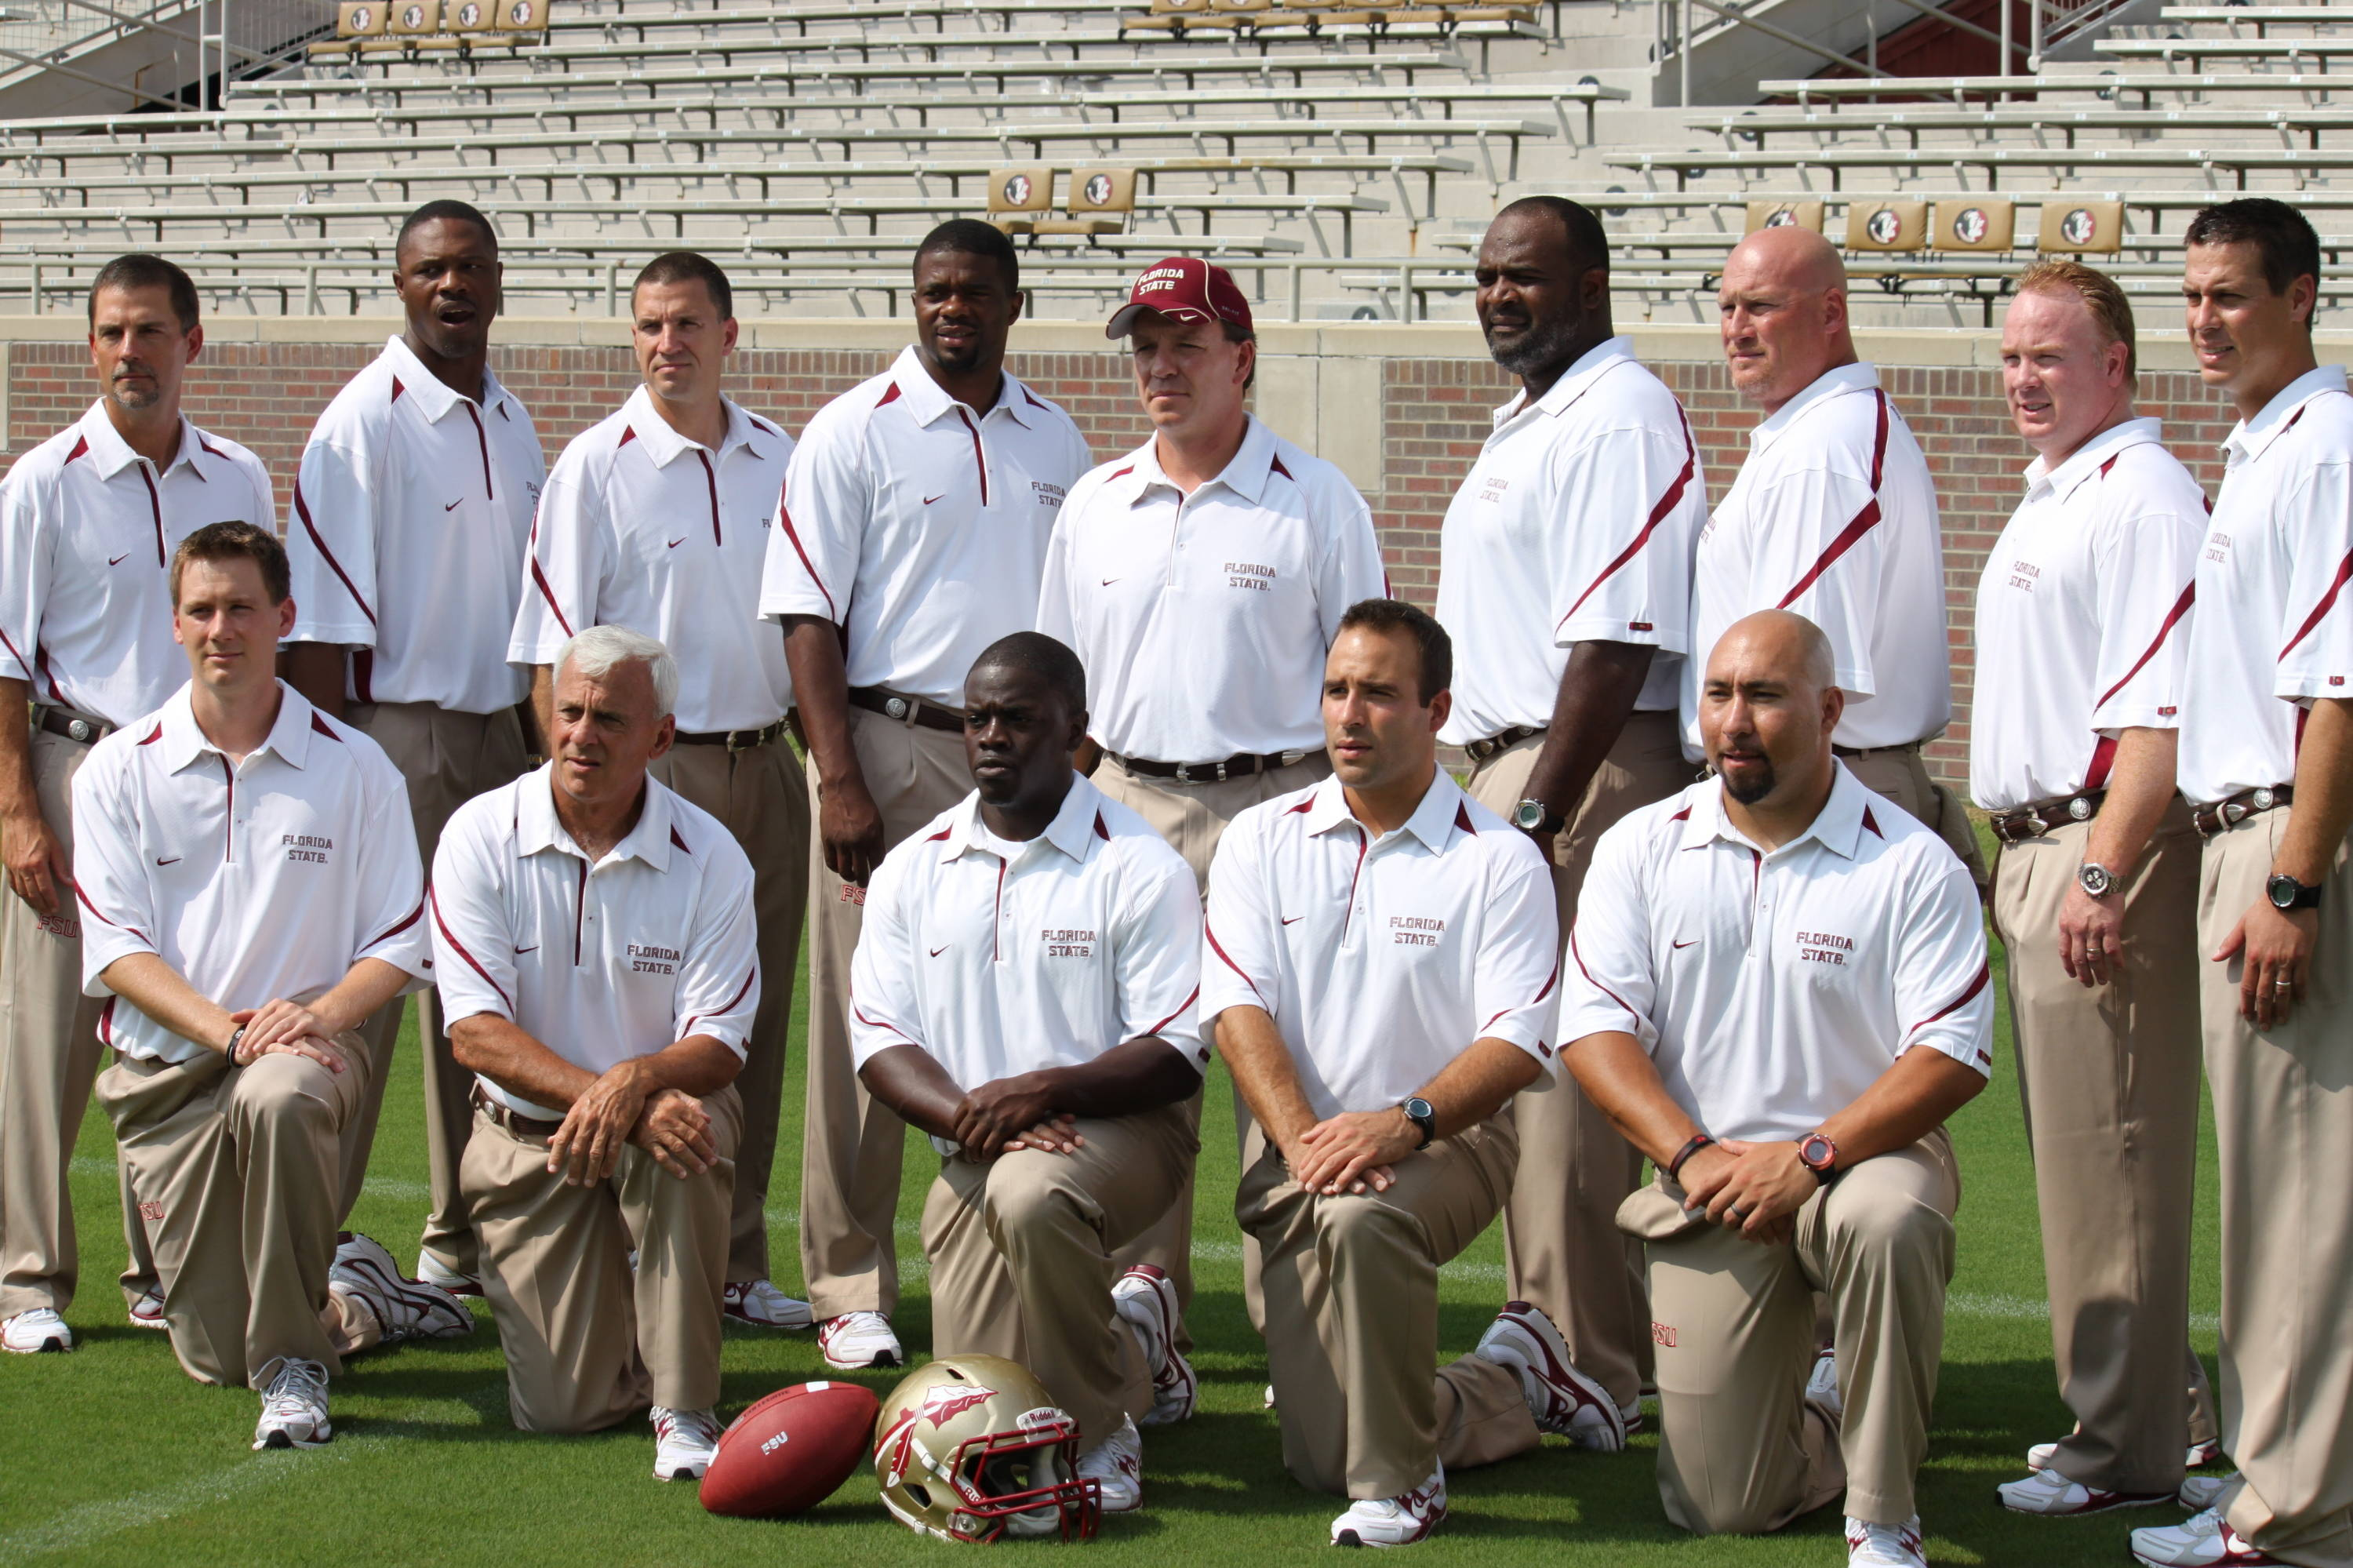 The Florida State coaching staff.